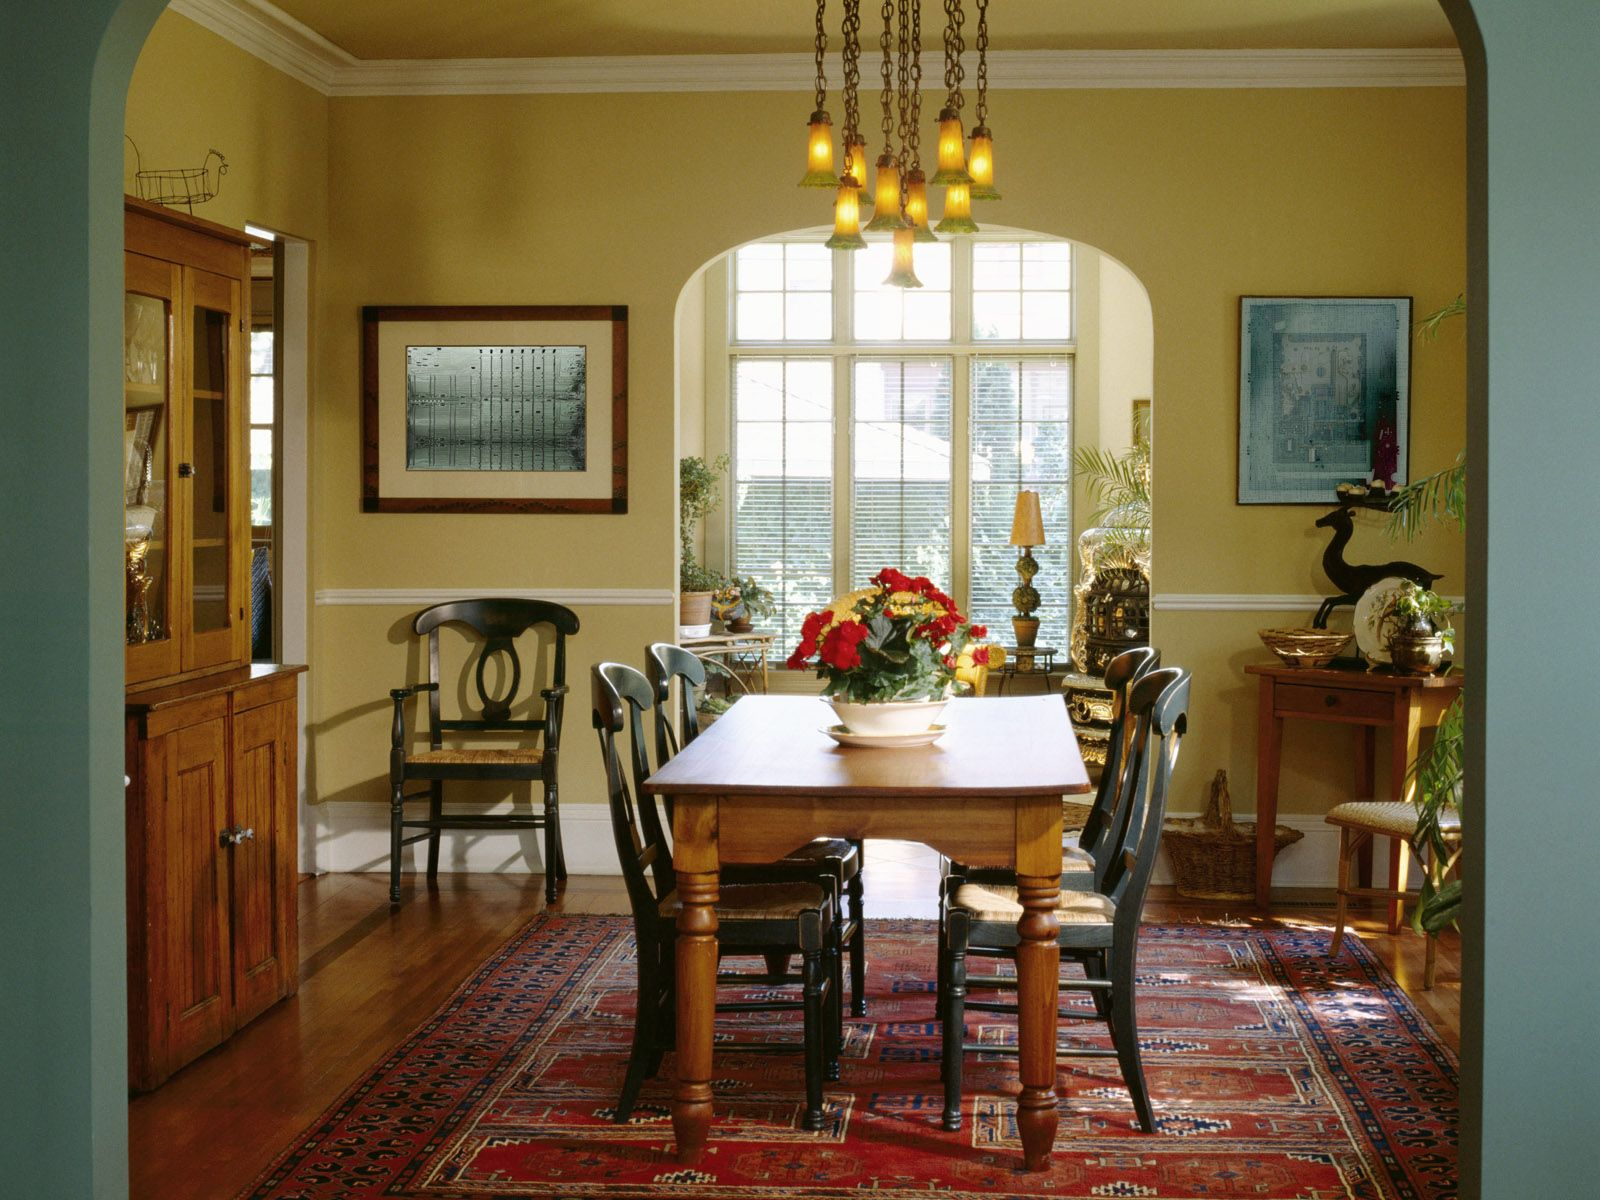 dining room: unique antique dining room chandeliers over natural